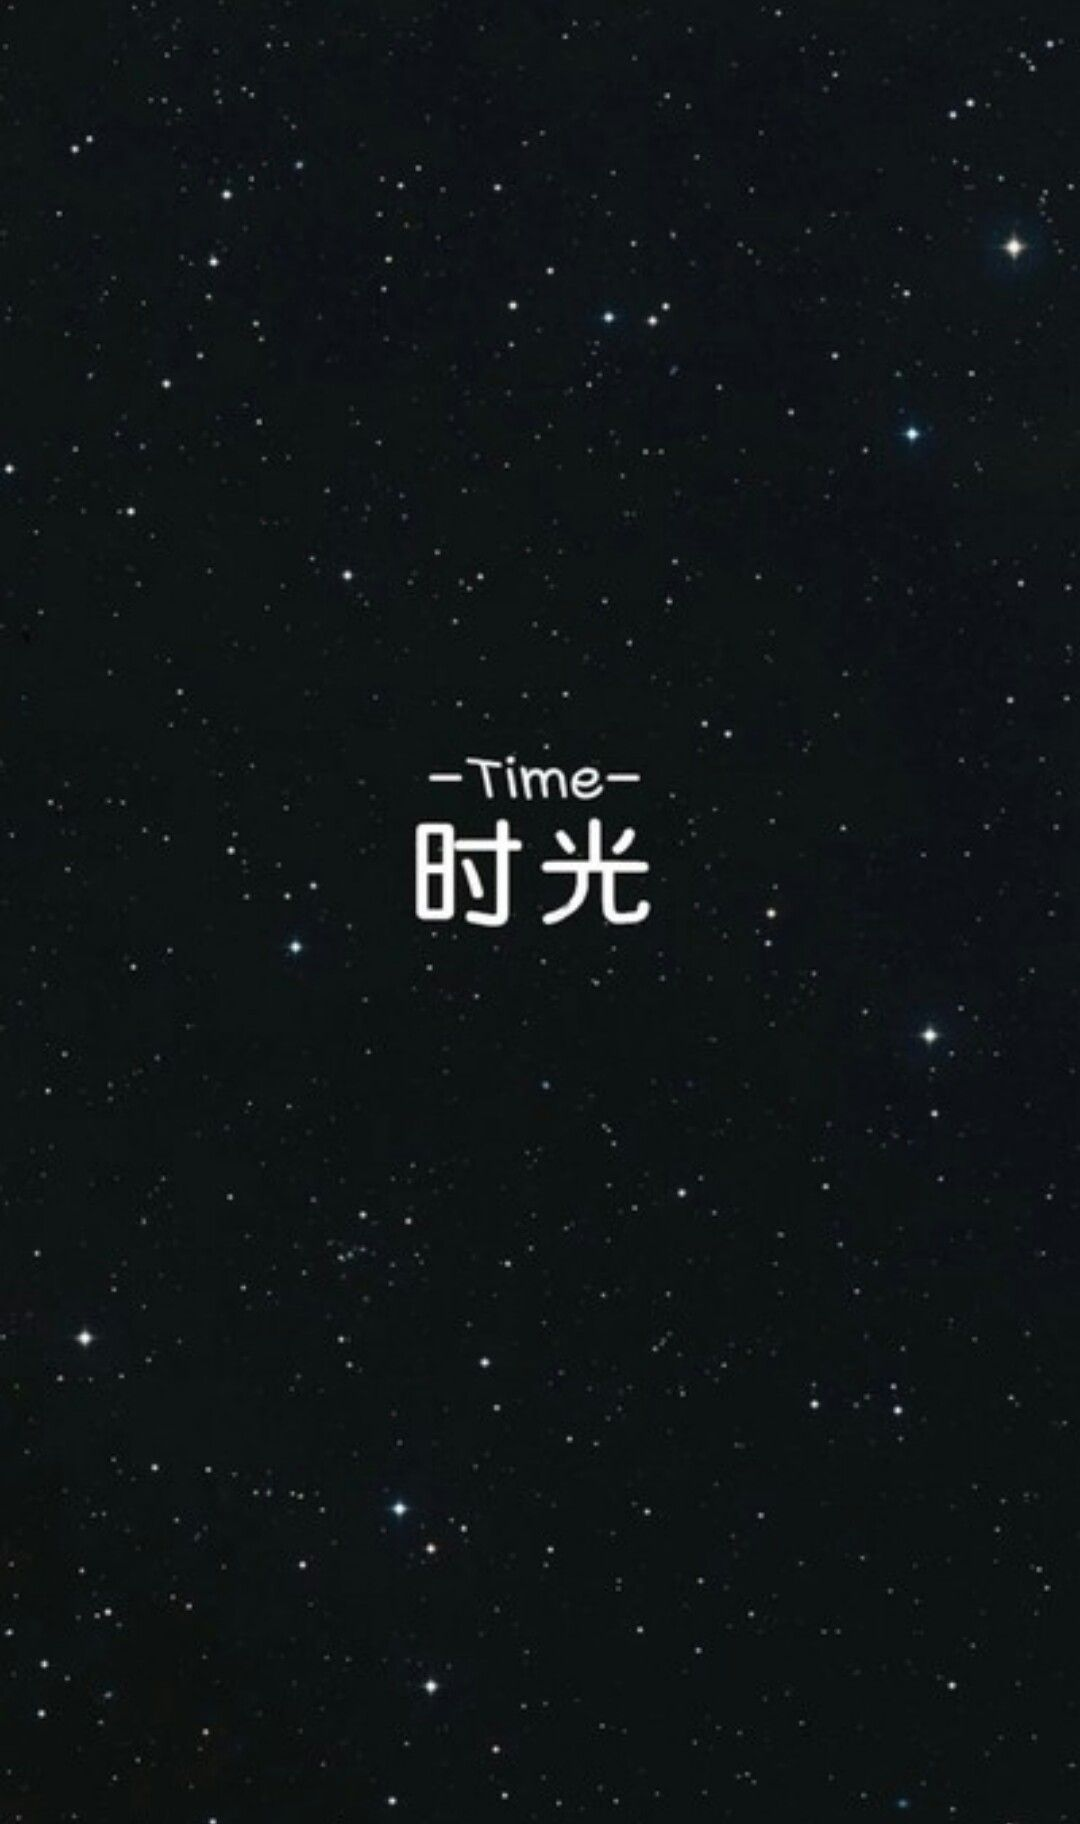 Linaphat Stars Time Chinese Wallpaper Chinese Wallpaper Black